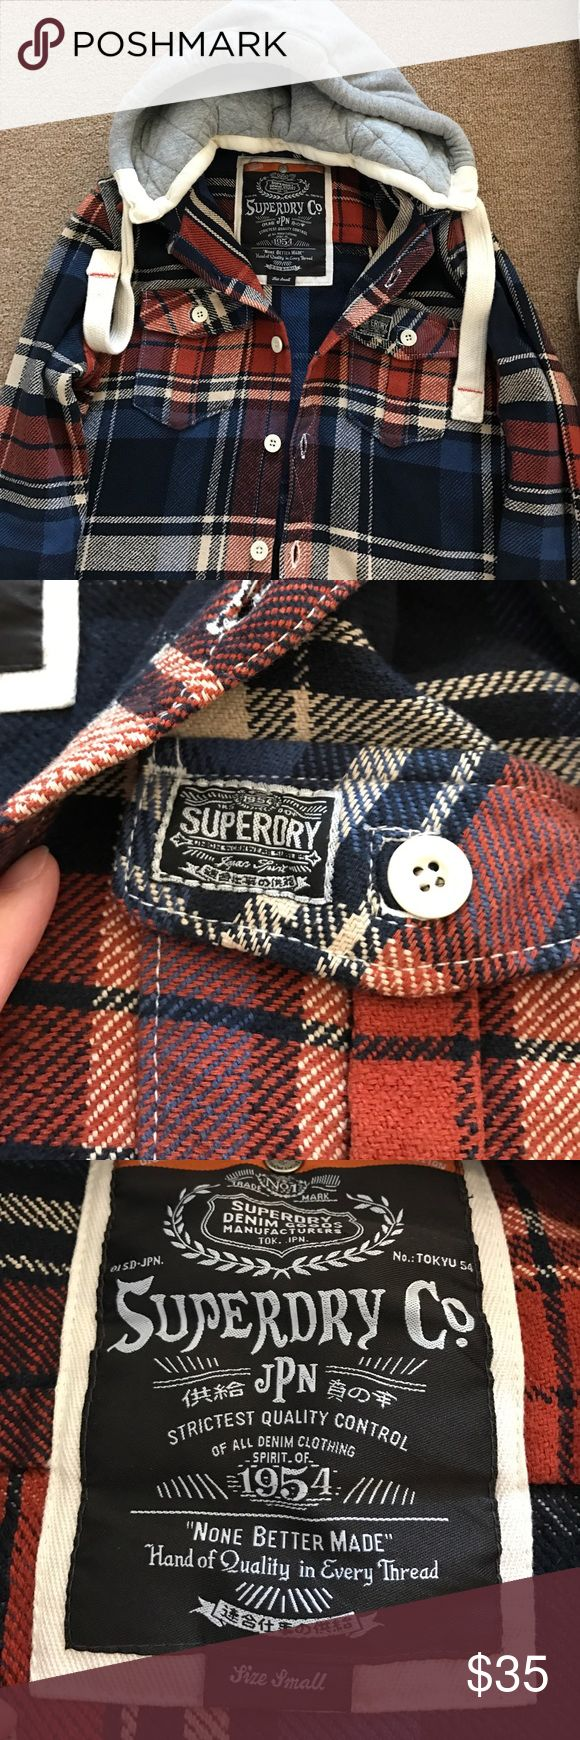 Superdry plaid jacket Reposh- Superdry plaid jacket. Great condition- unfortunately it's too big on me. Removable hood. Superdry Jackets & Coats